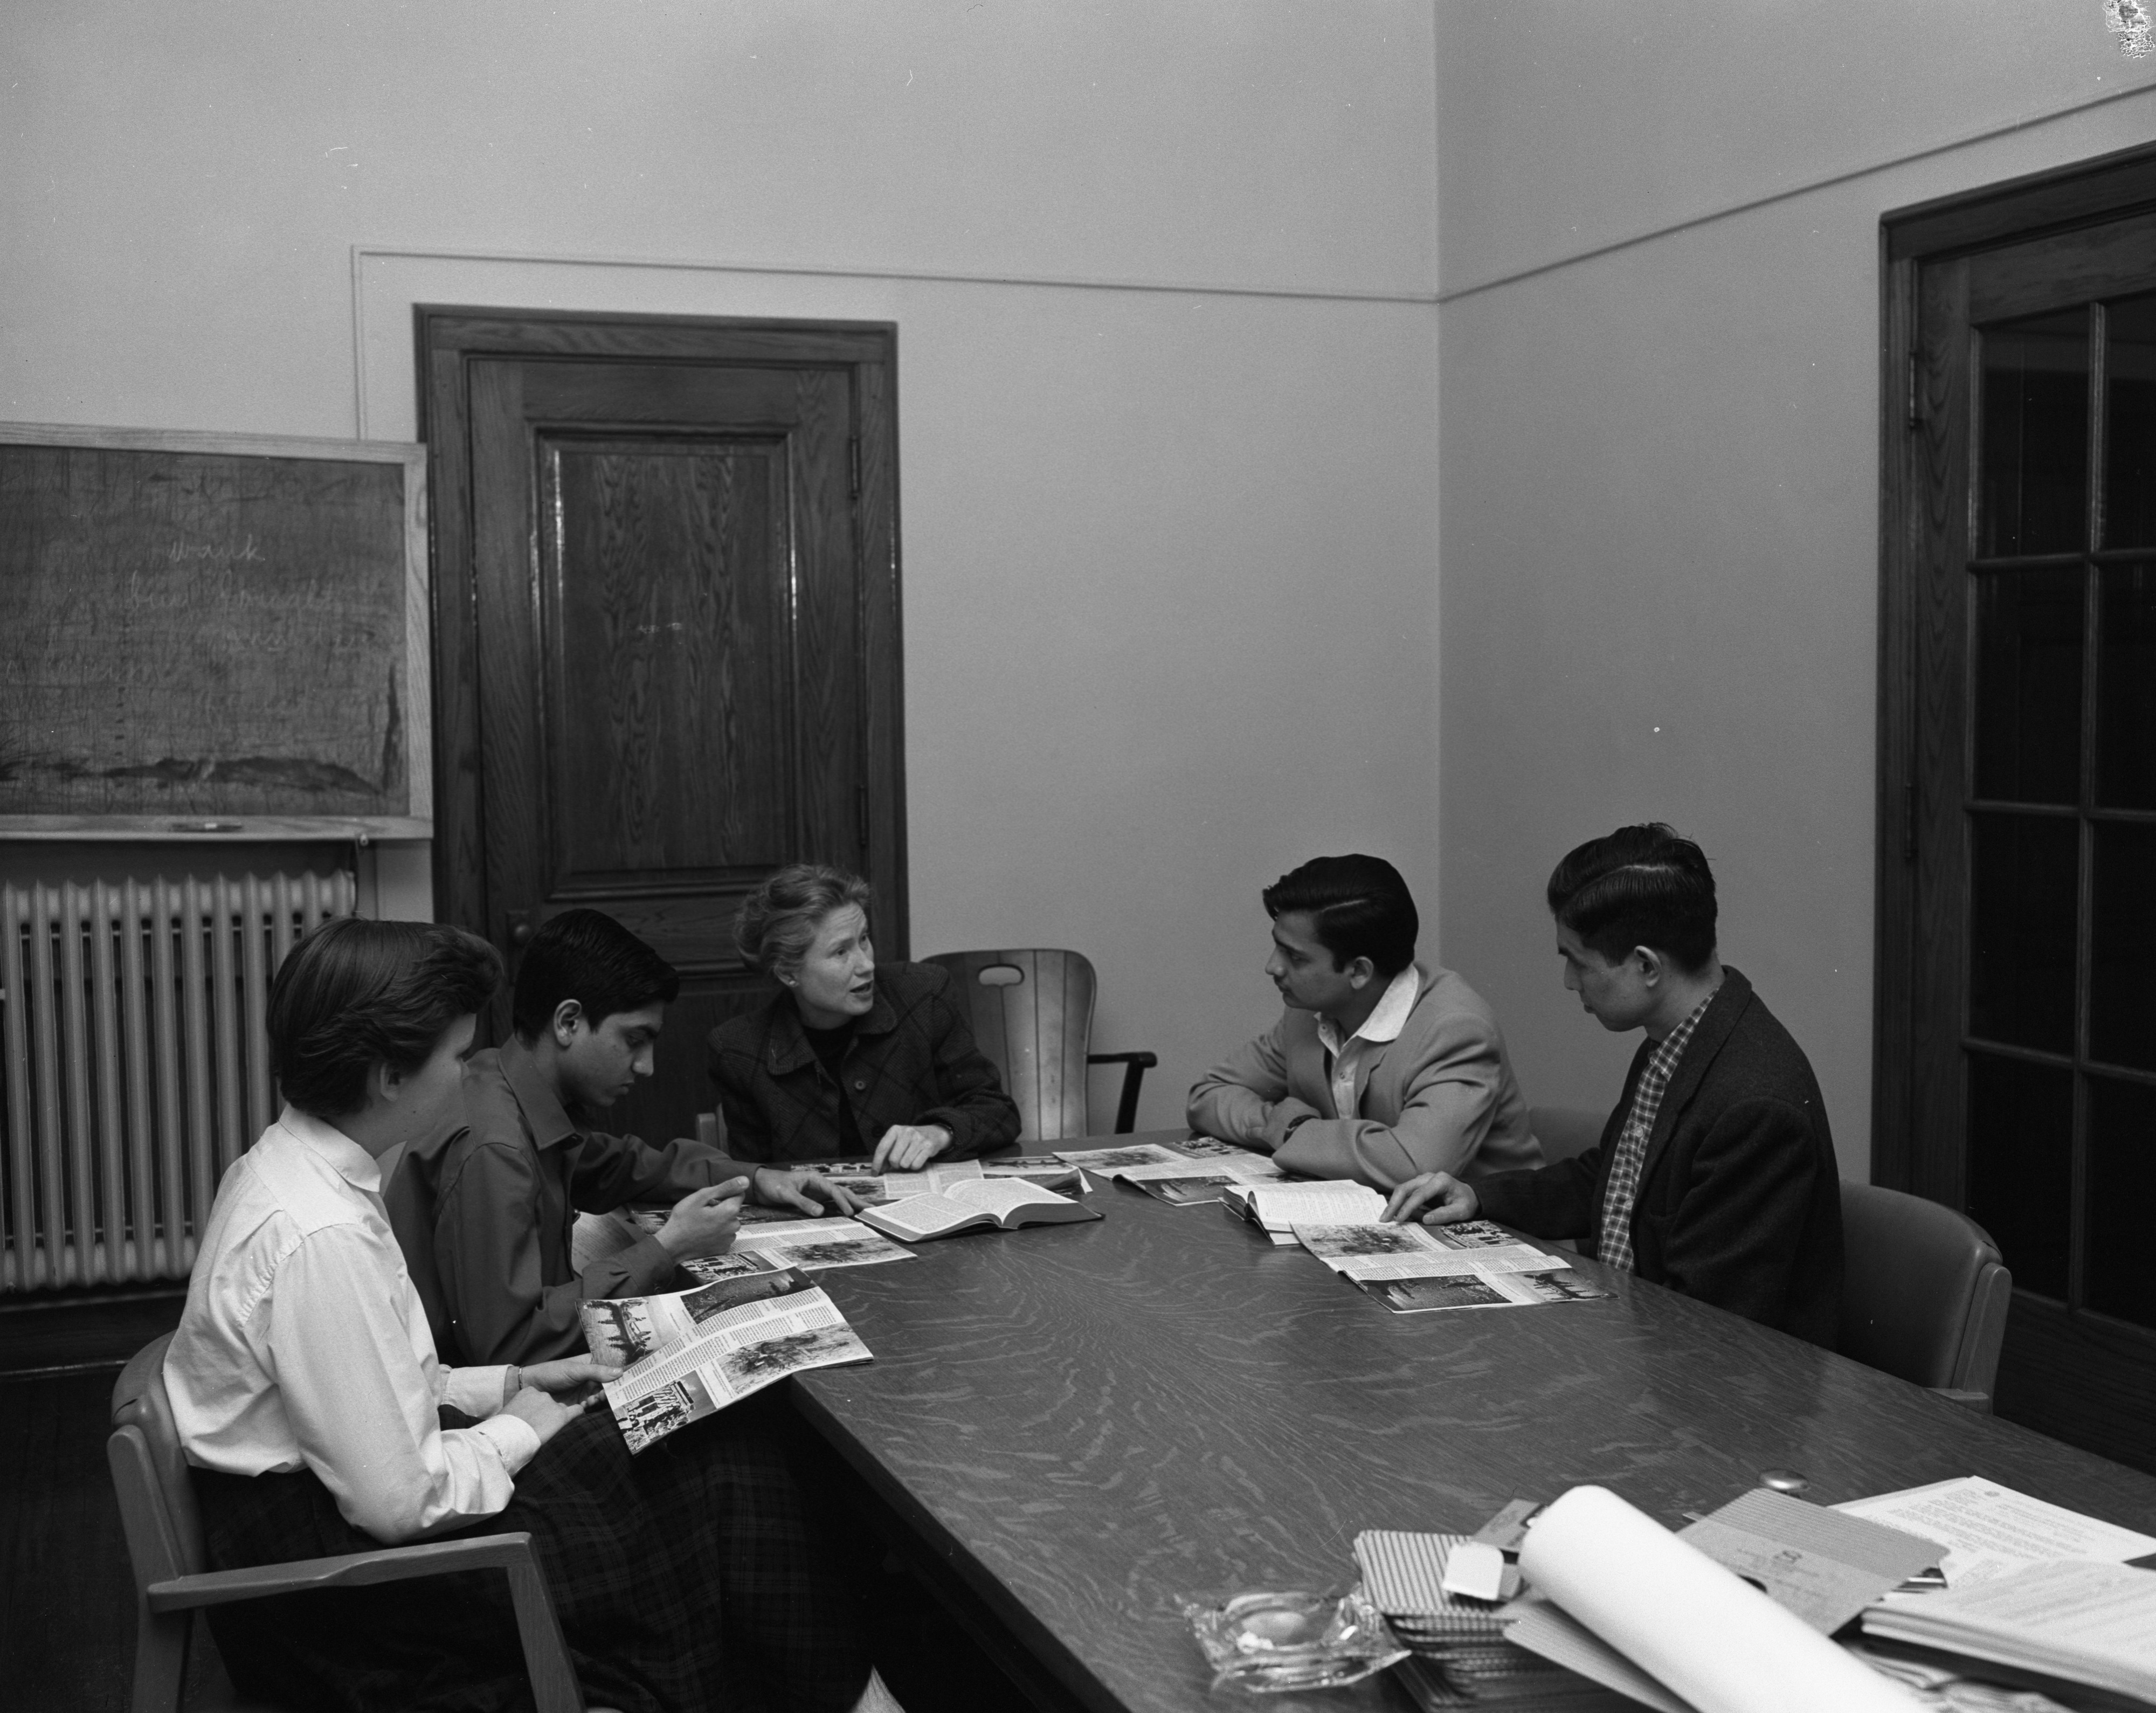 Amber Van Teaches UM International Students About The Bible At Lane Hall, May 2, 1958 image